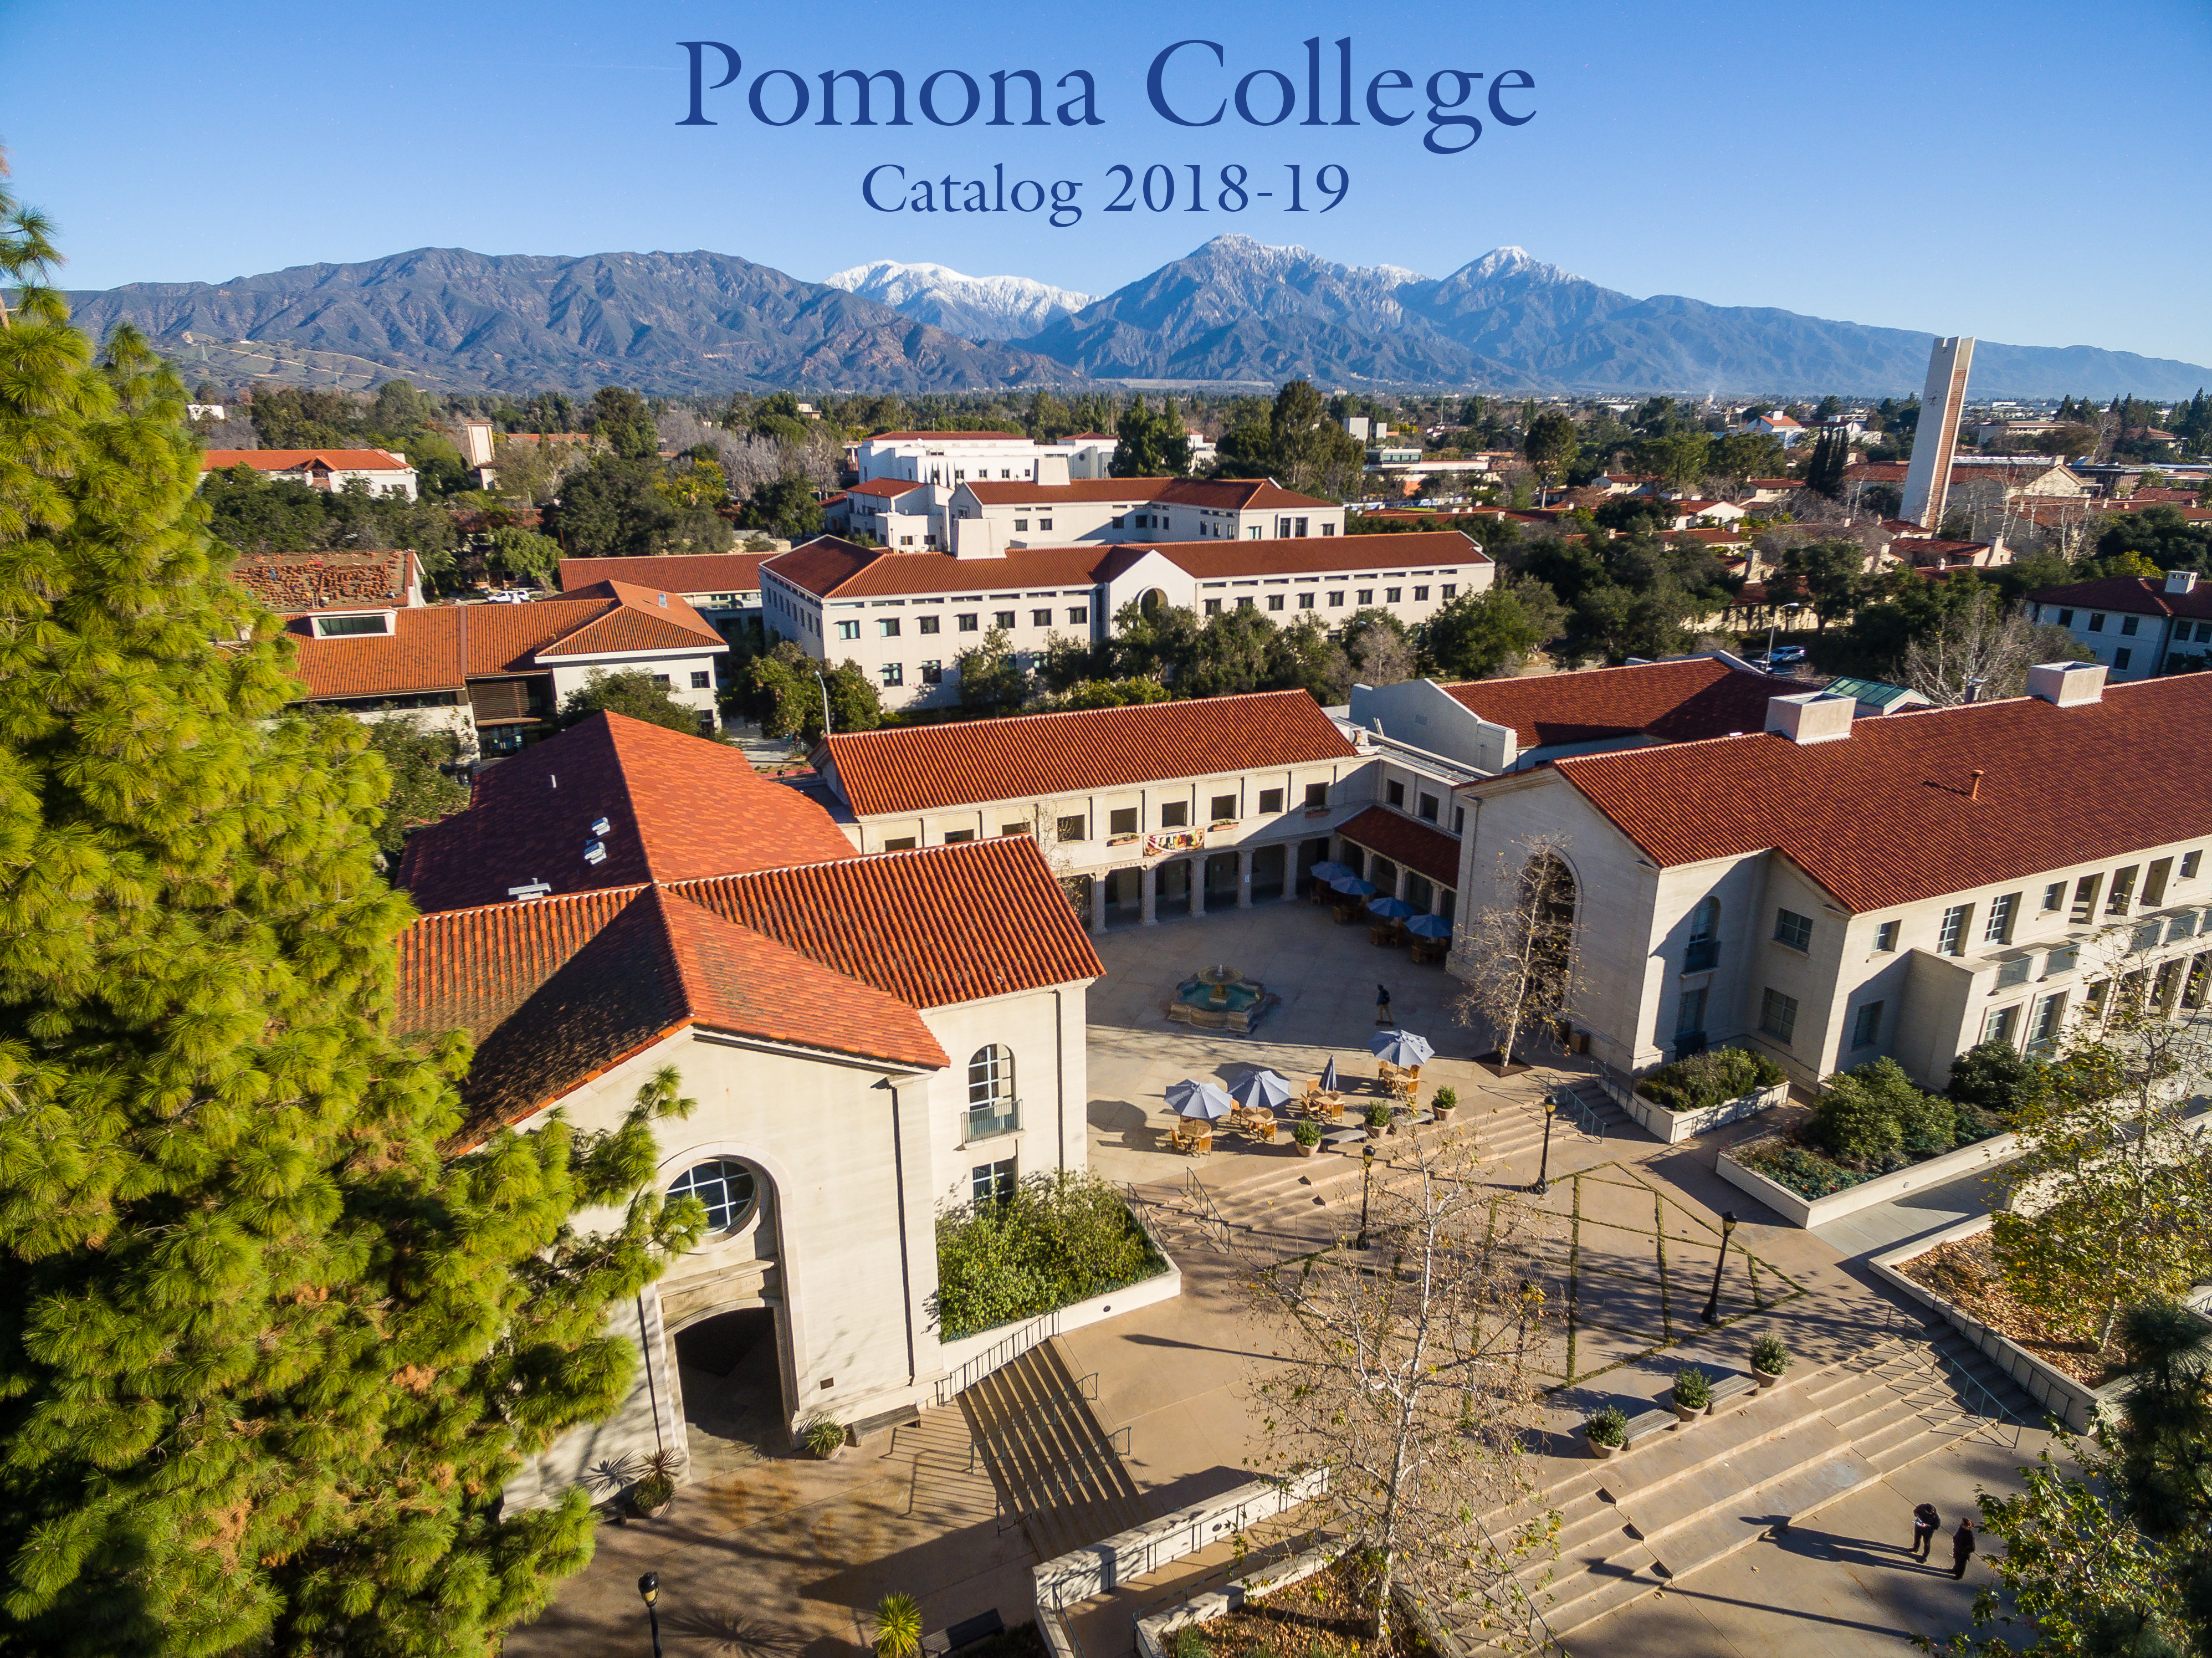 Pomona College Catalog 2018-19